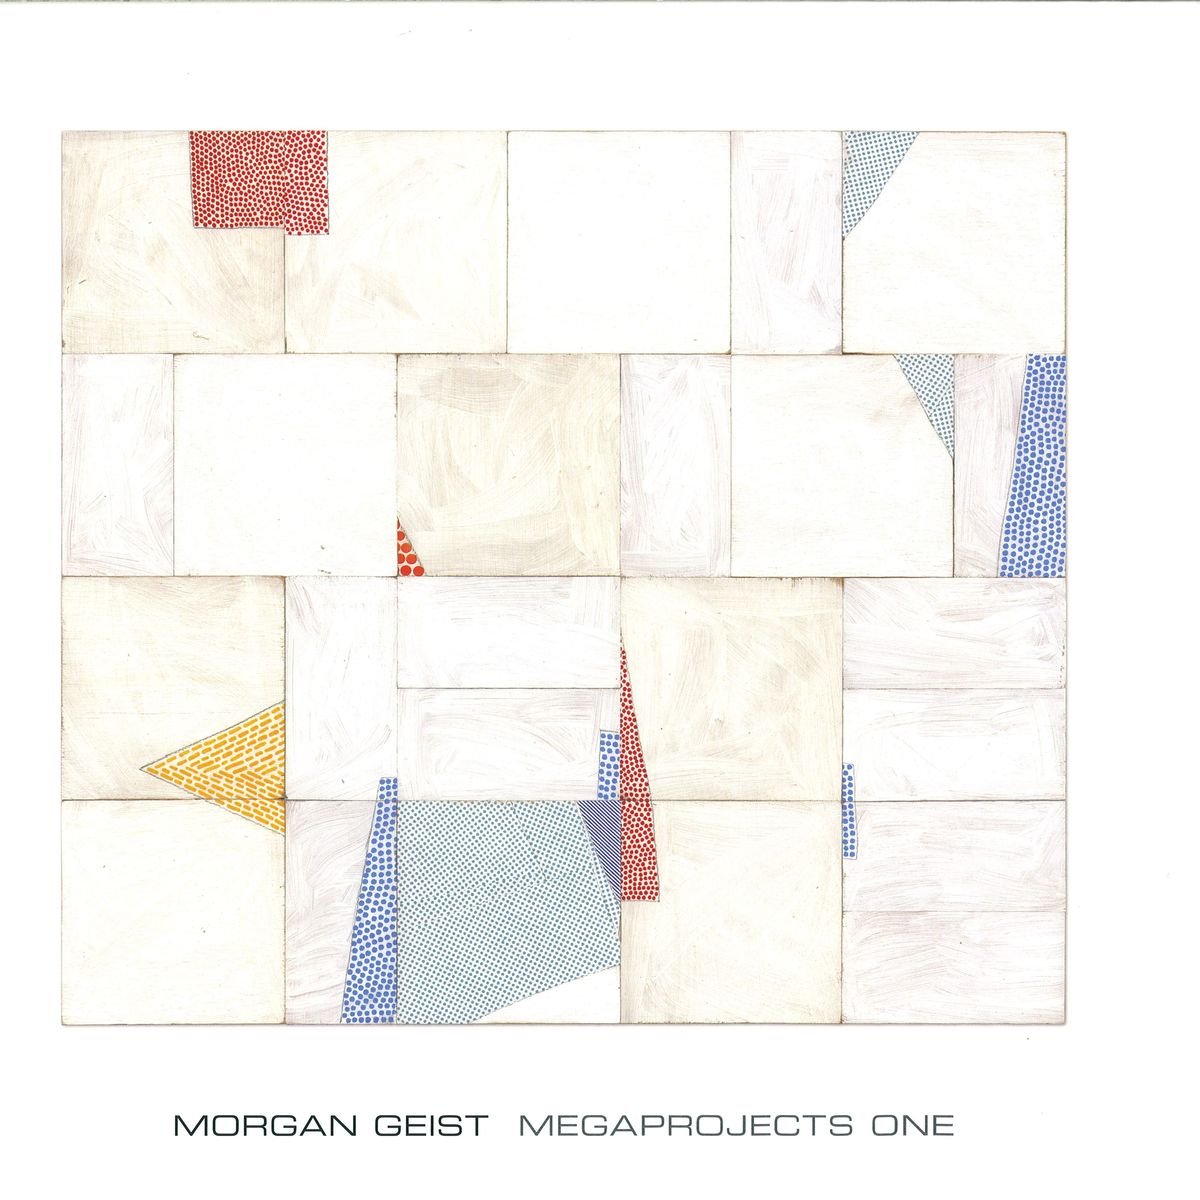 Morgan Geist - Megaprojects One